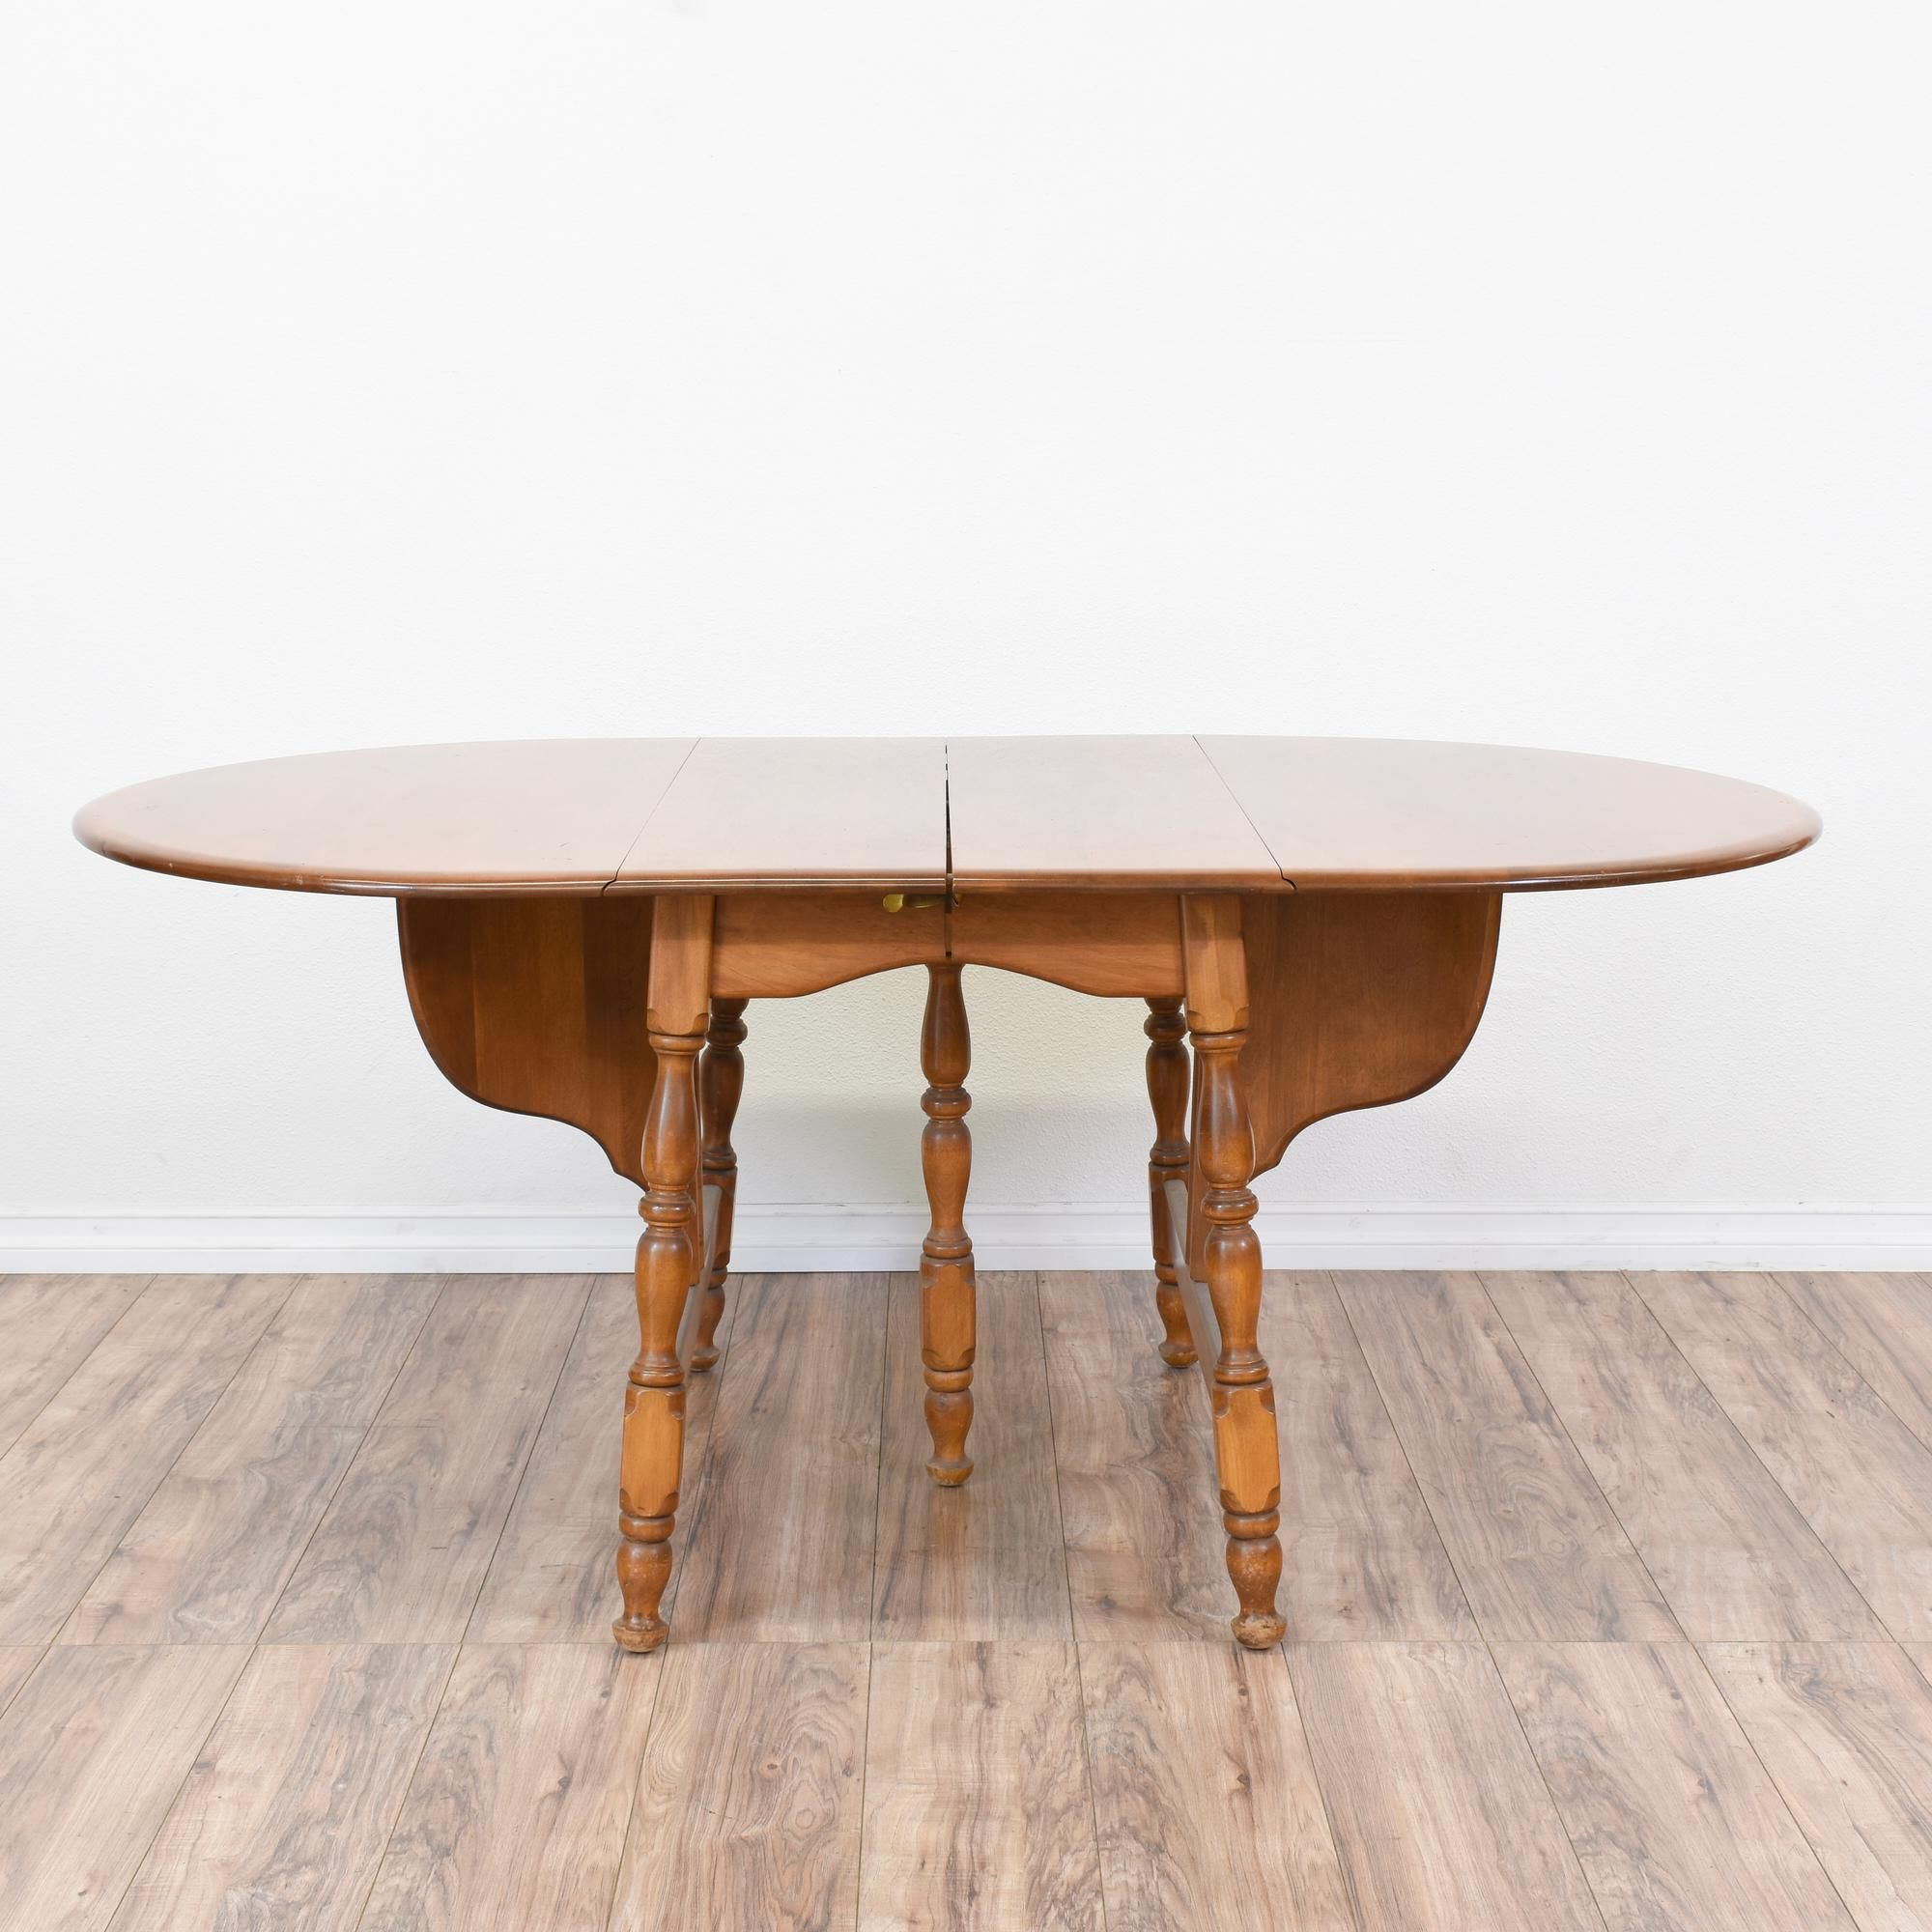 This Walter Of Wabash Dining Table Is